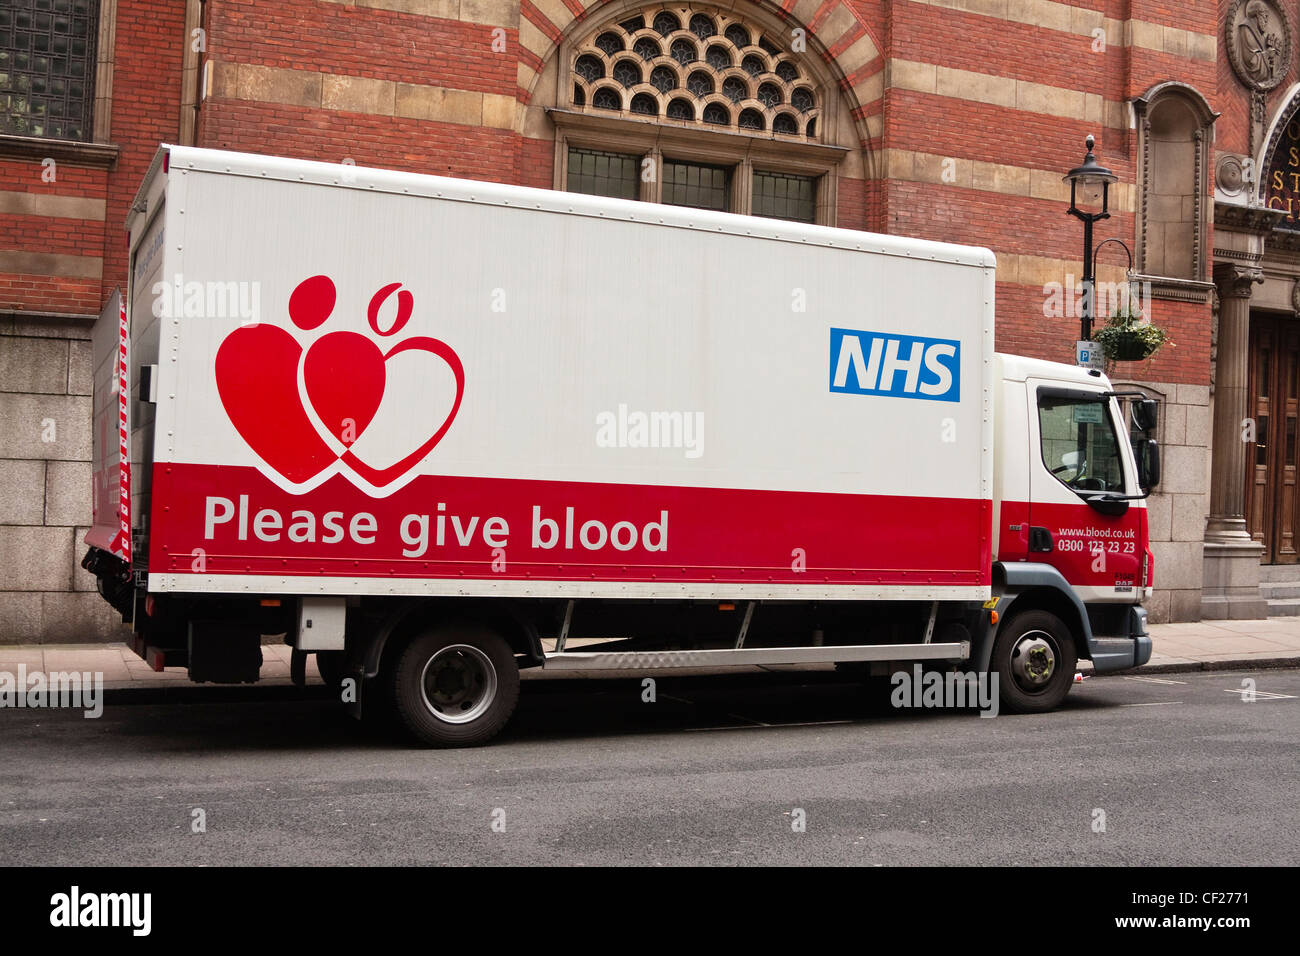 NHS Blood and Transplant (The National Blood Service) lorry - Stock Image